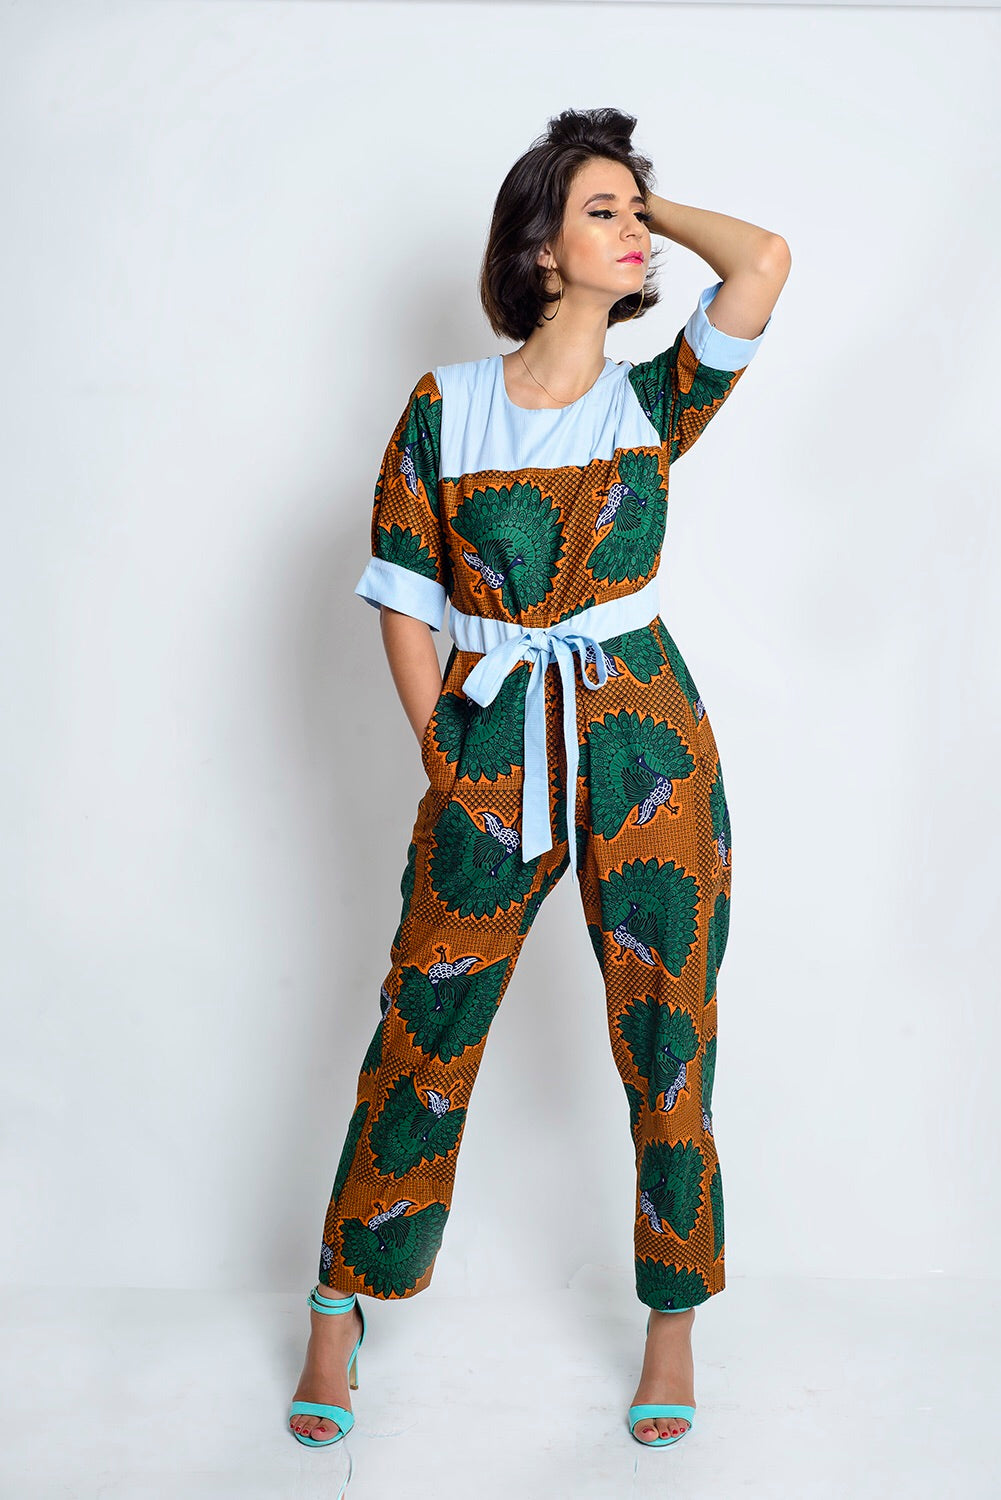 Doshima African Print Ankara jumpsuit with shirt details - Afrothrone